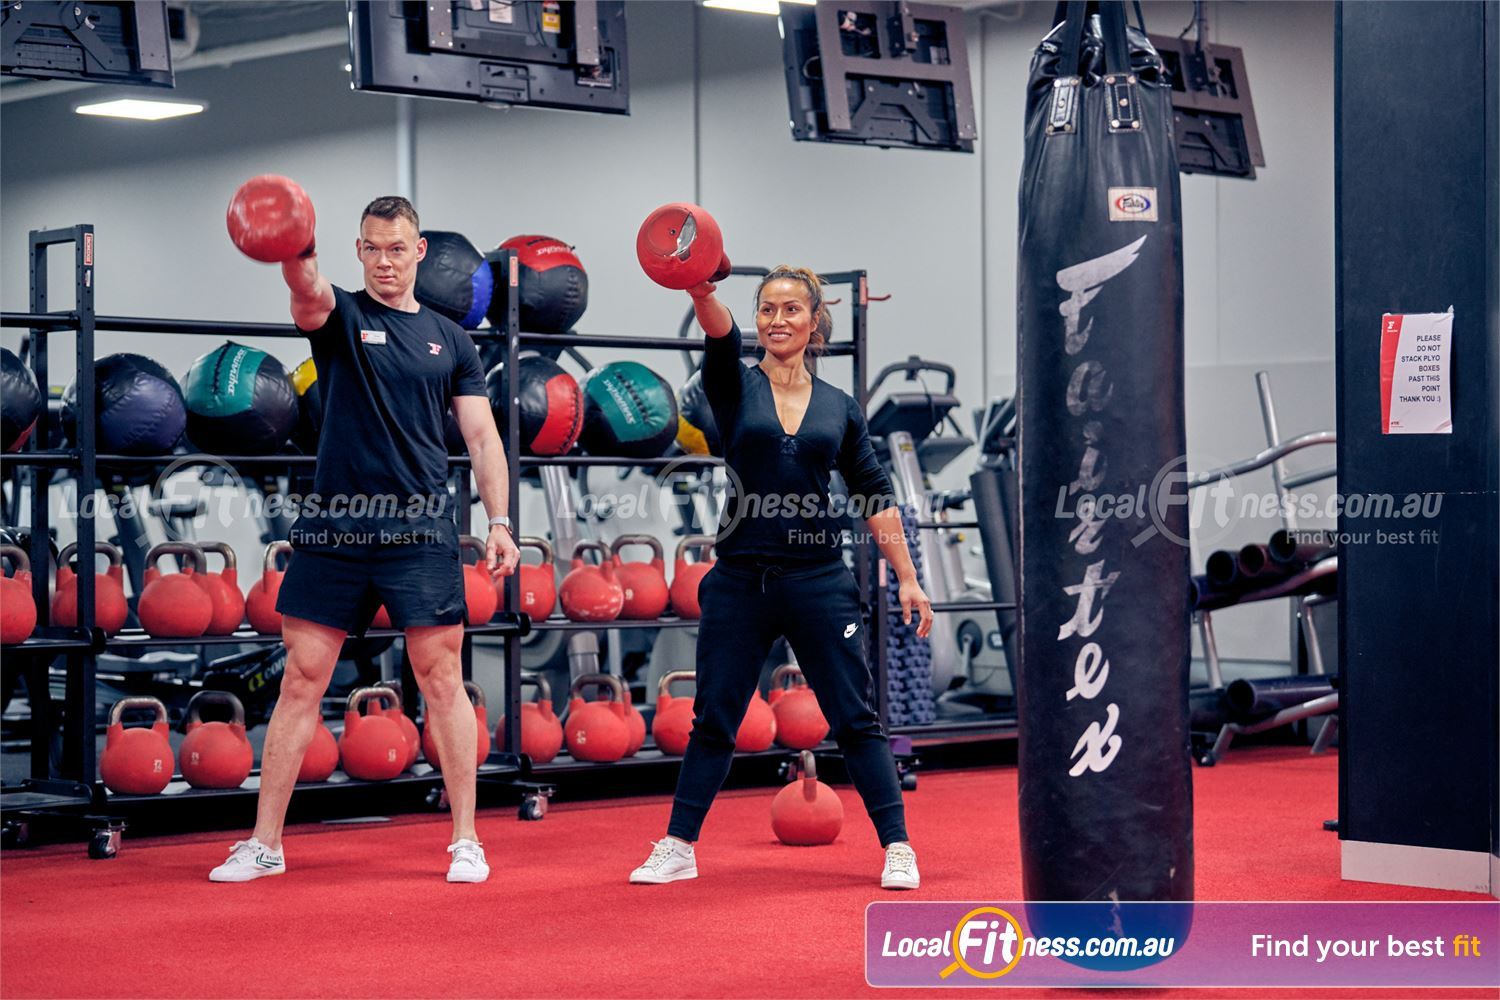 Fitness First Melbourne Central Platinum Melbourne Our free-weights area is fully equipped with kettlebells.